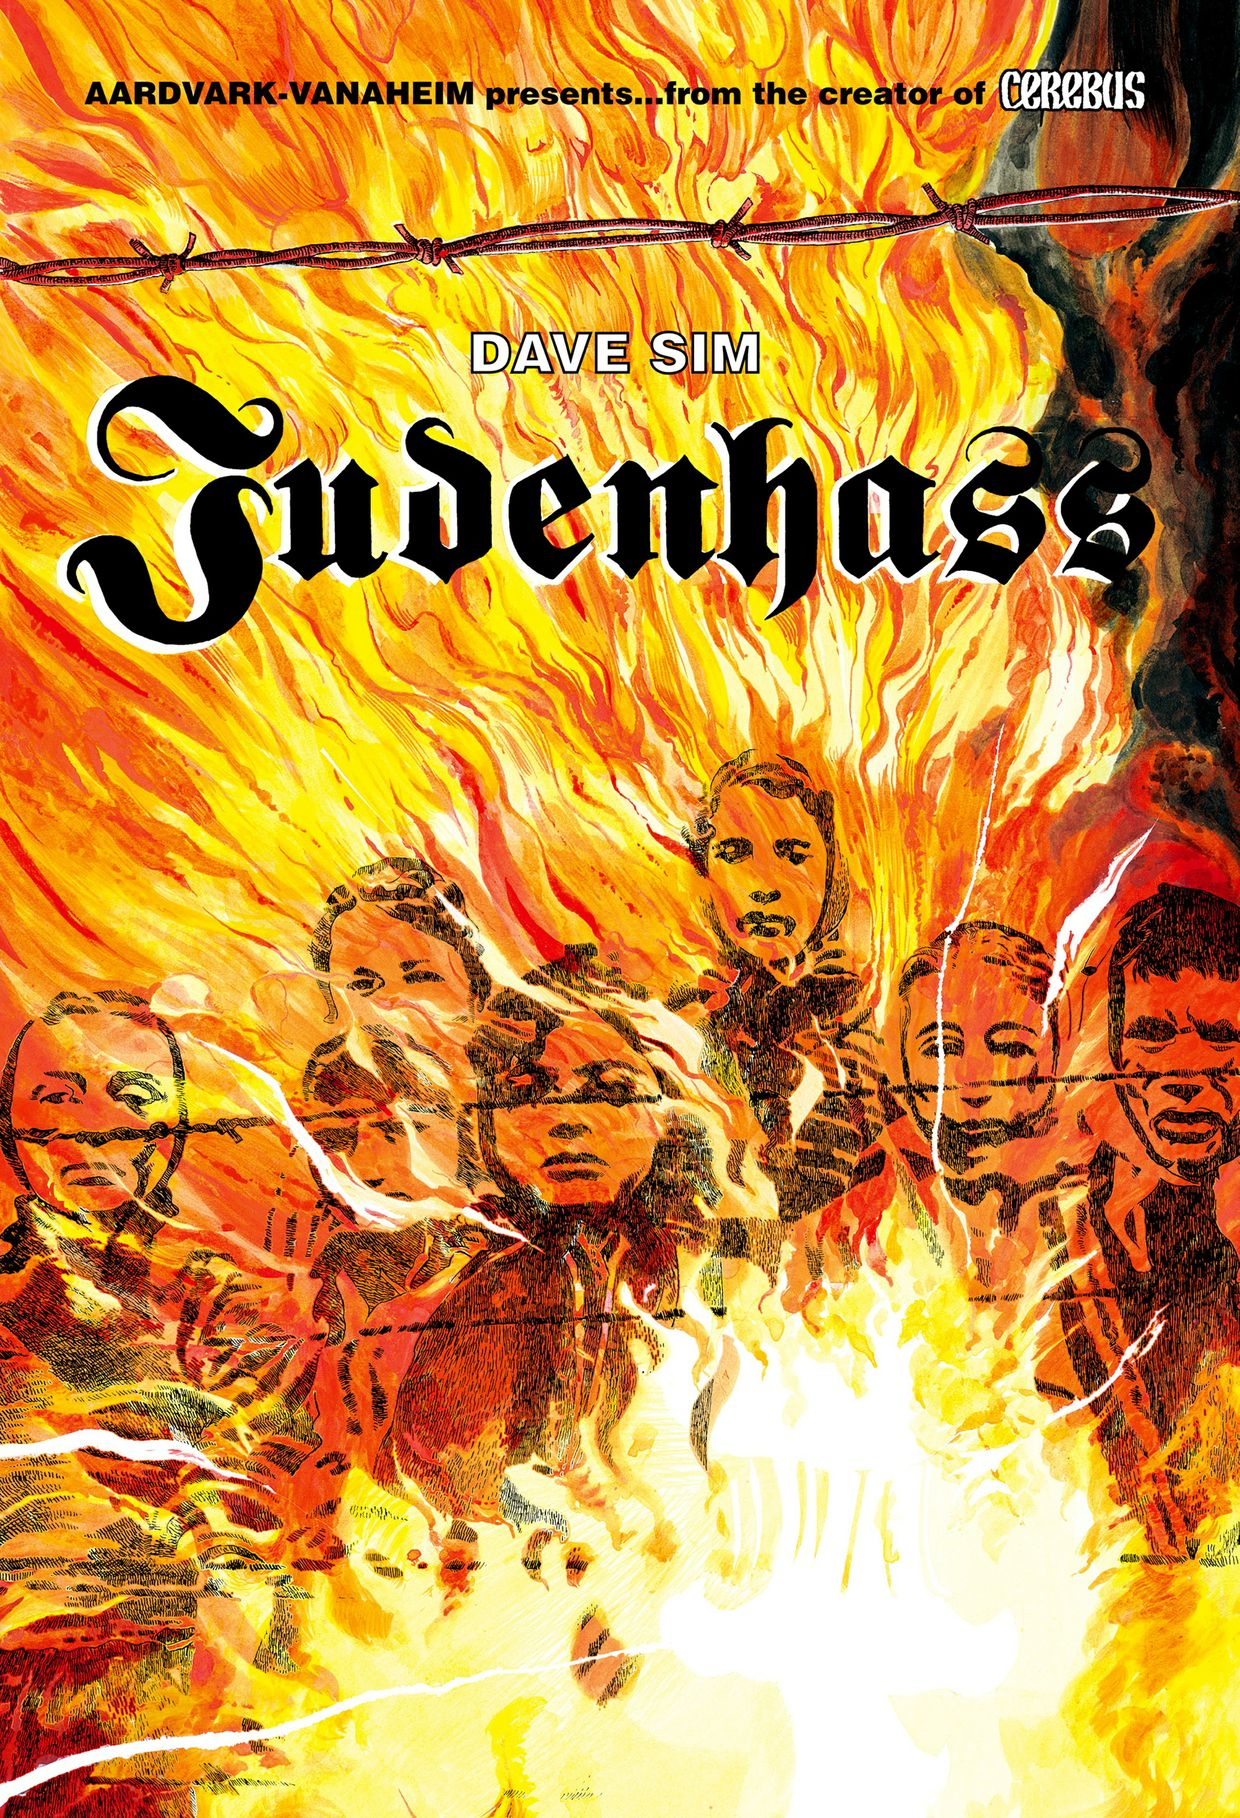 JUDENHASS by Dave Sim